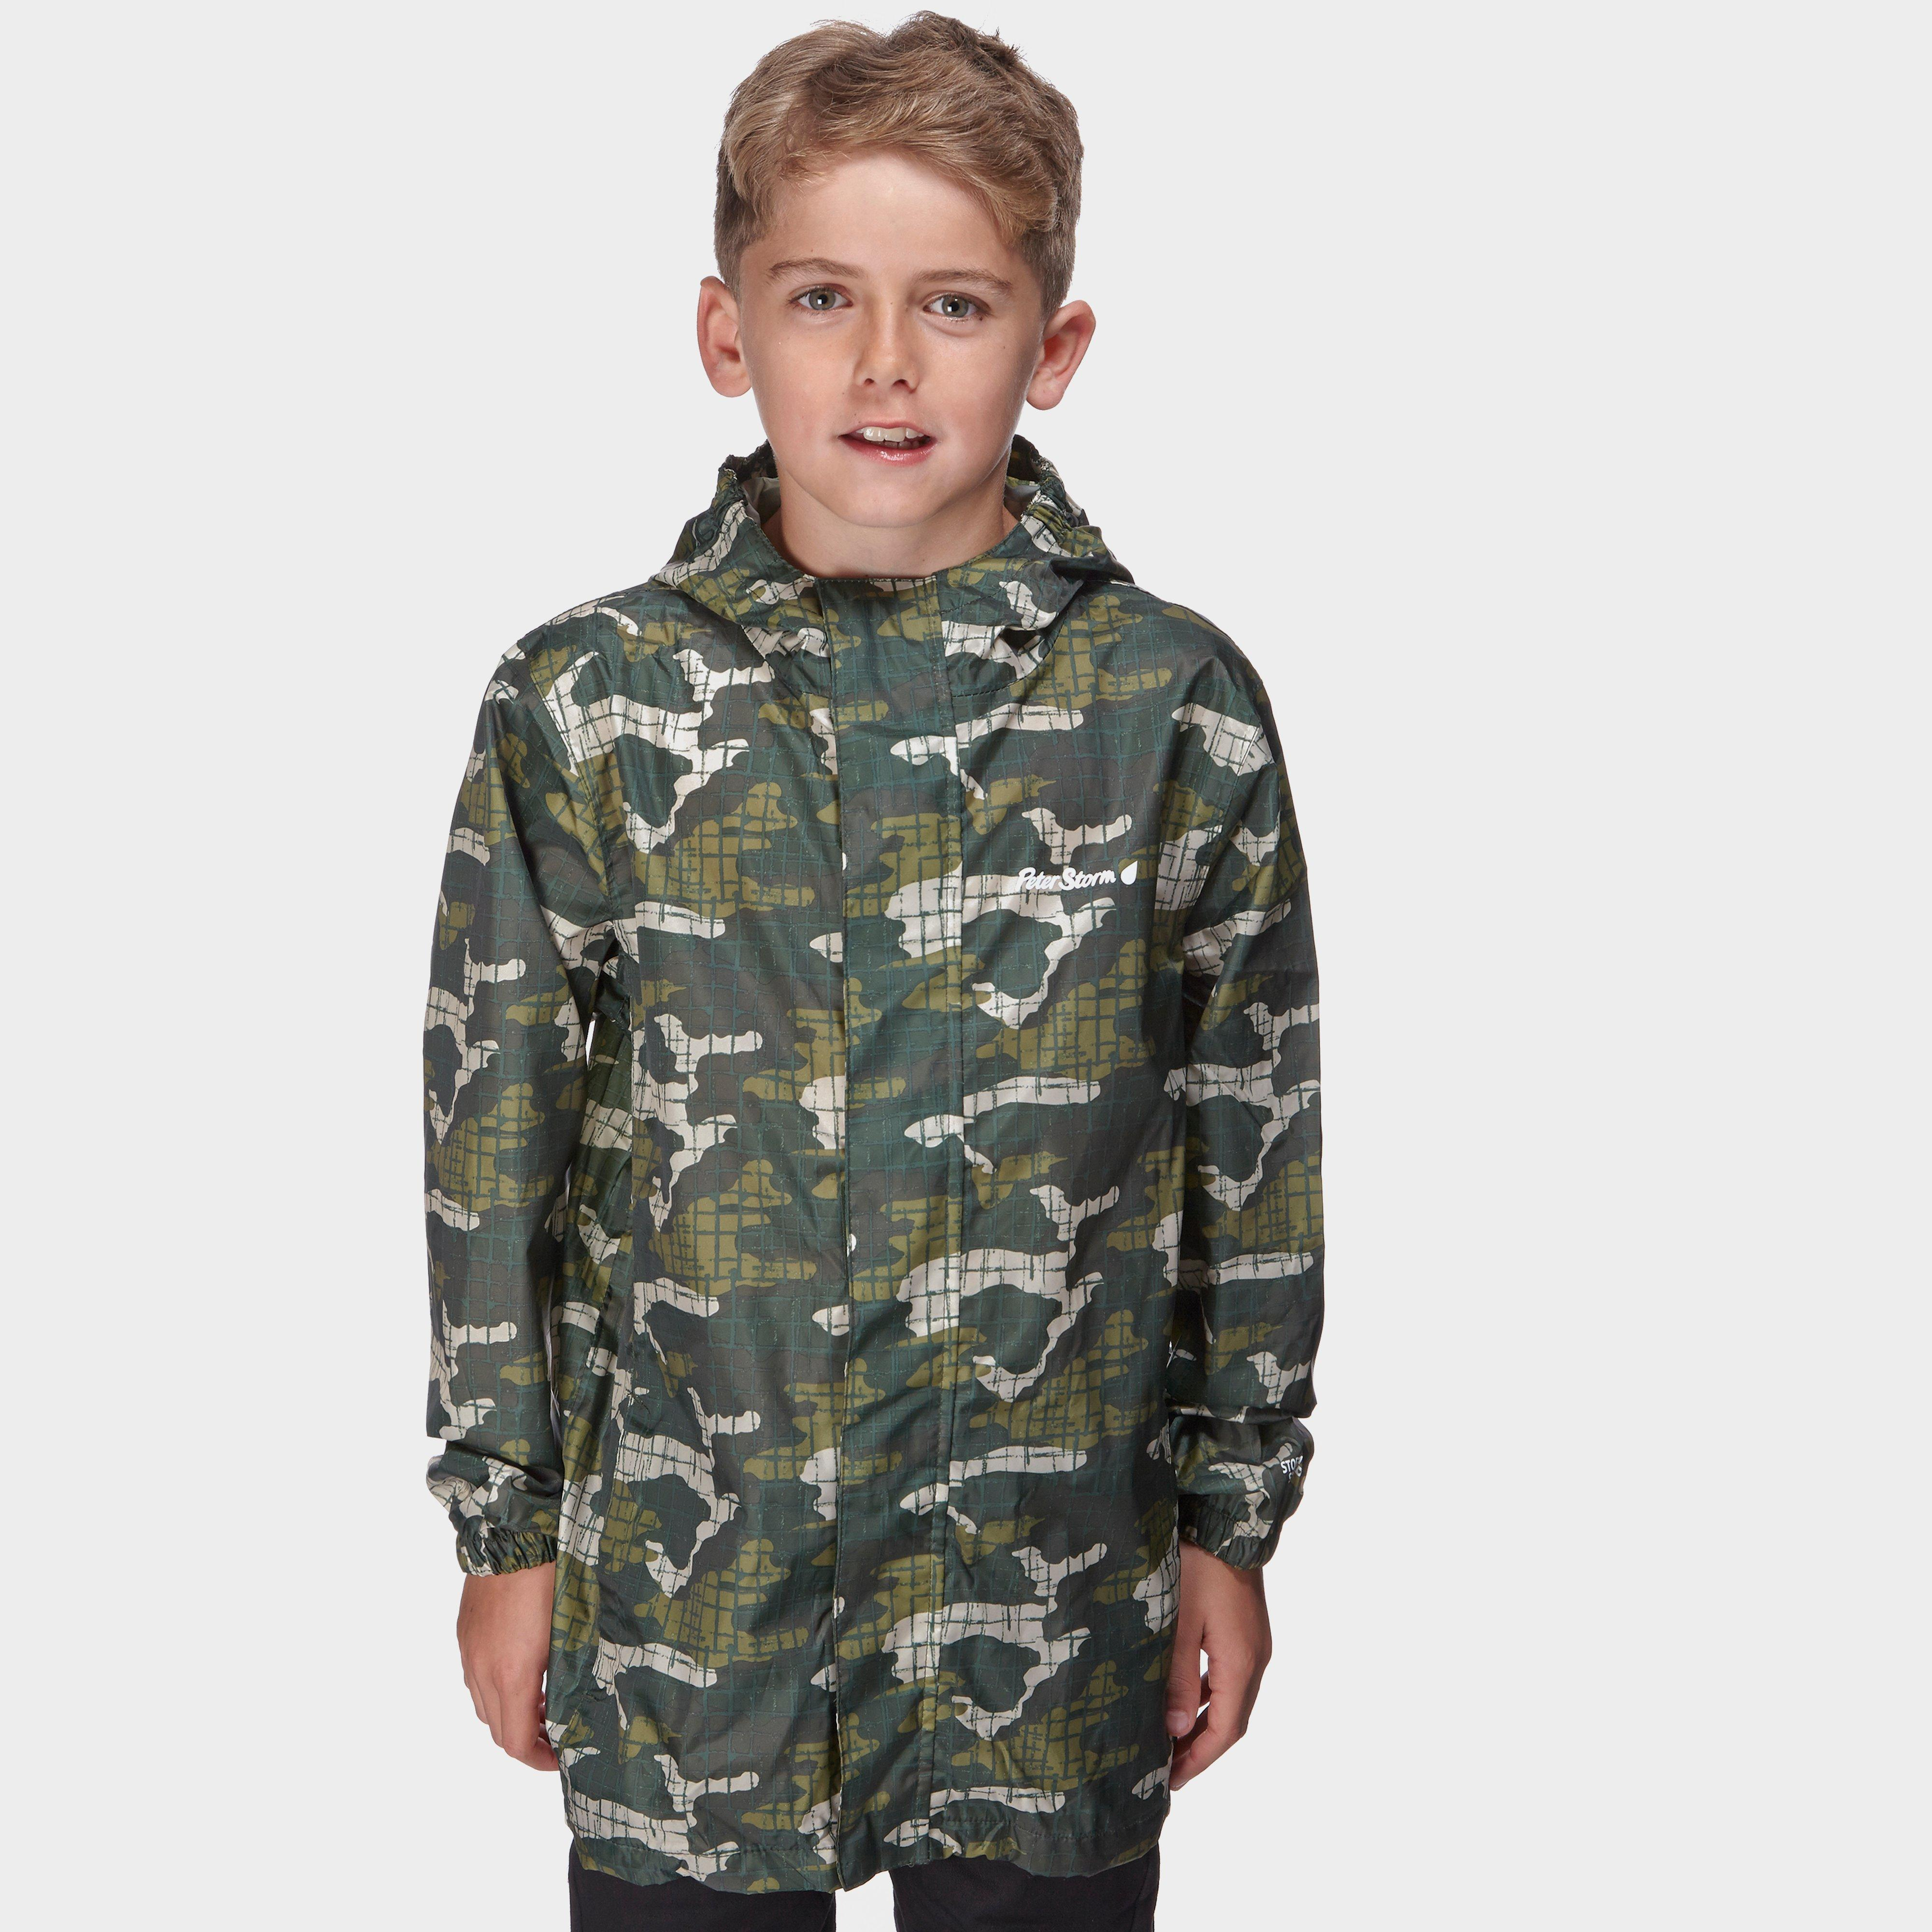 Camouflage Jackets. Many boys love the rugged outdoors look of camouflage, especially when it's on a warm and comfortable jacket. Consider camouflage jackets when looking for a new jacket for the boys .